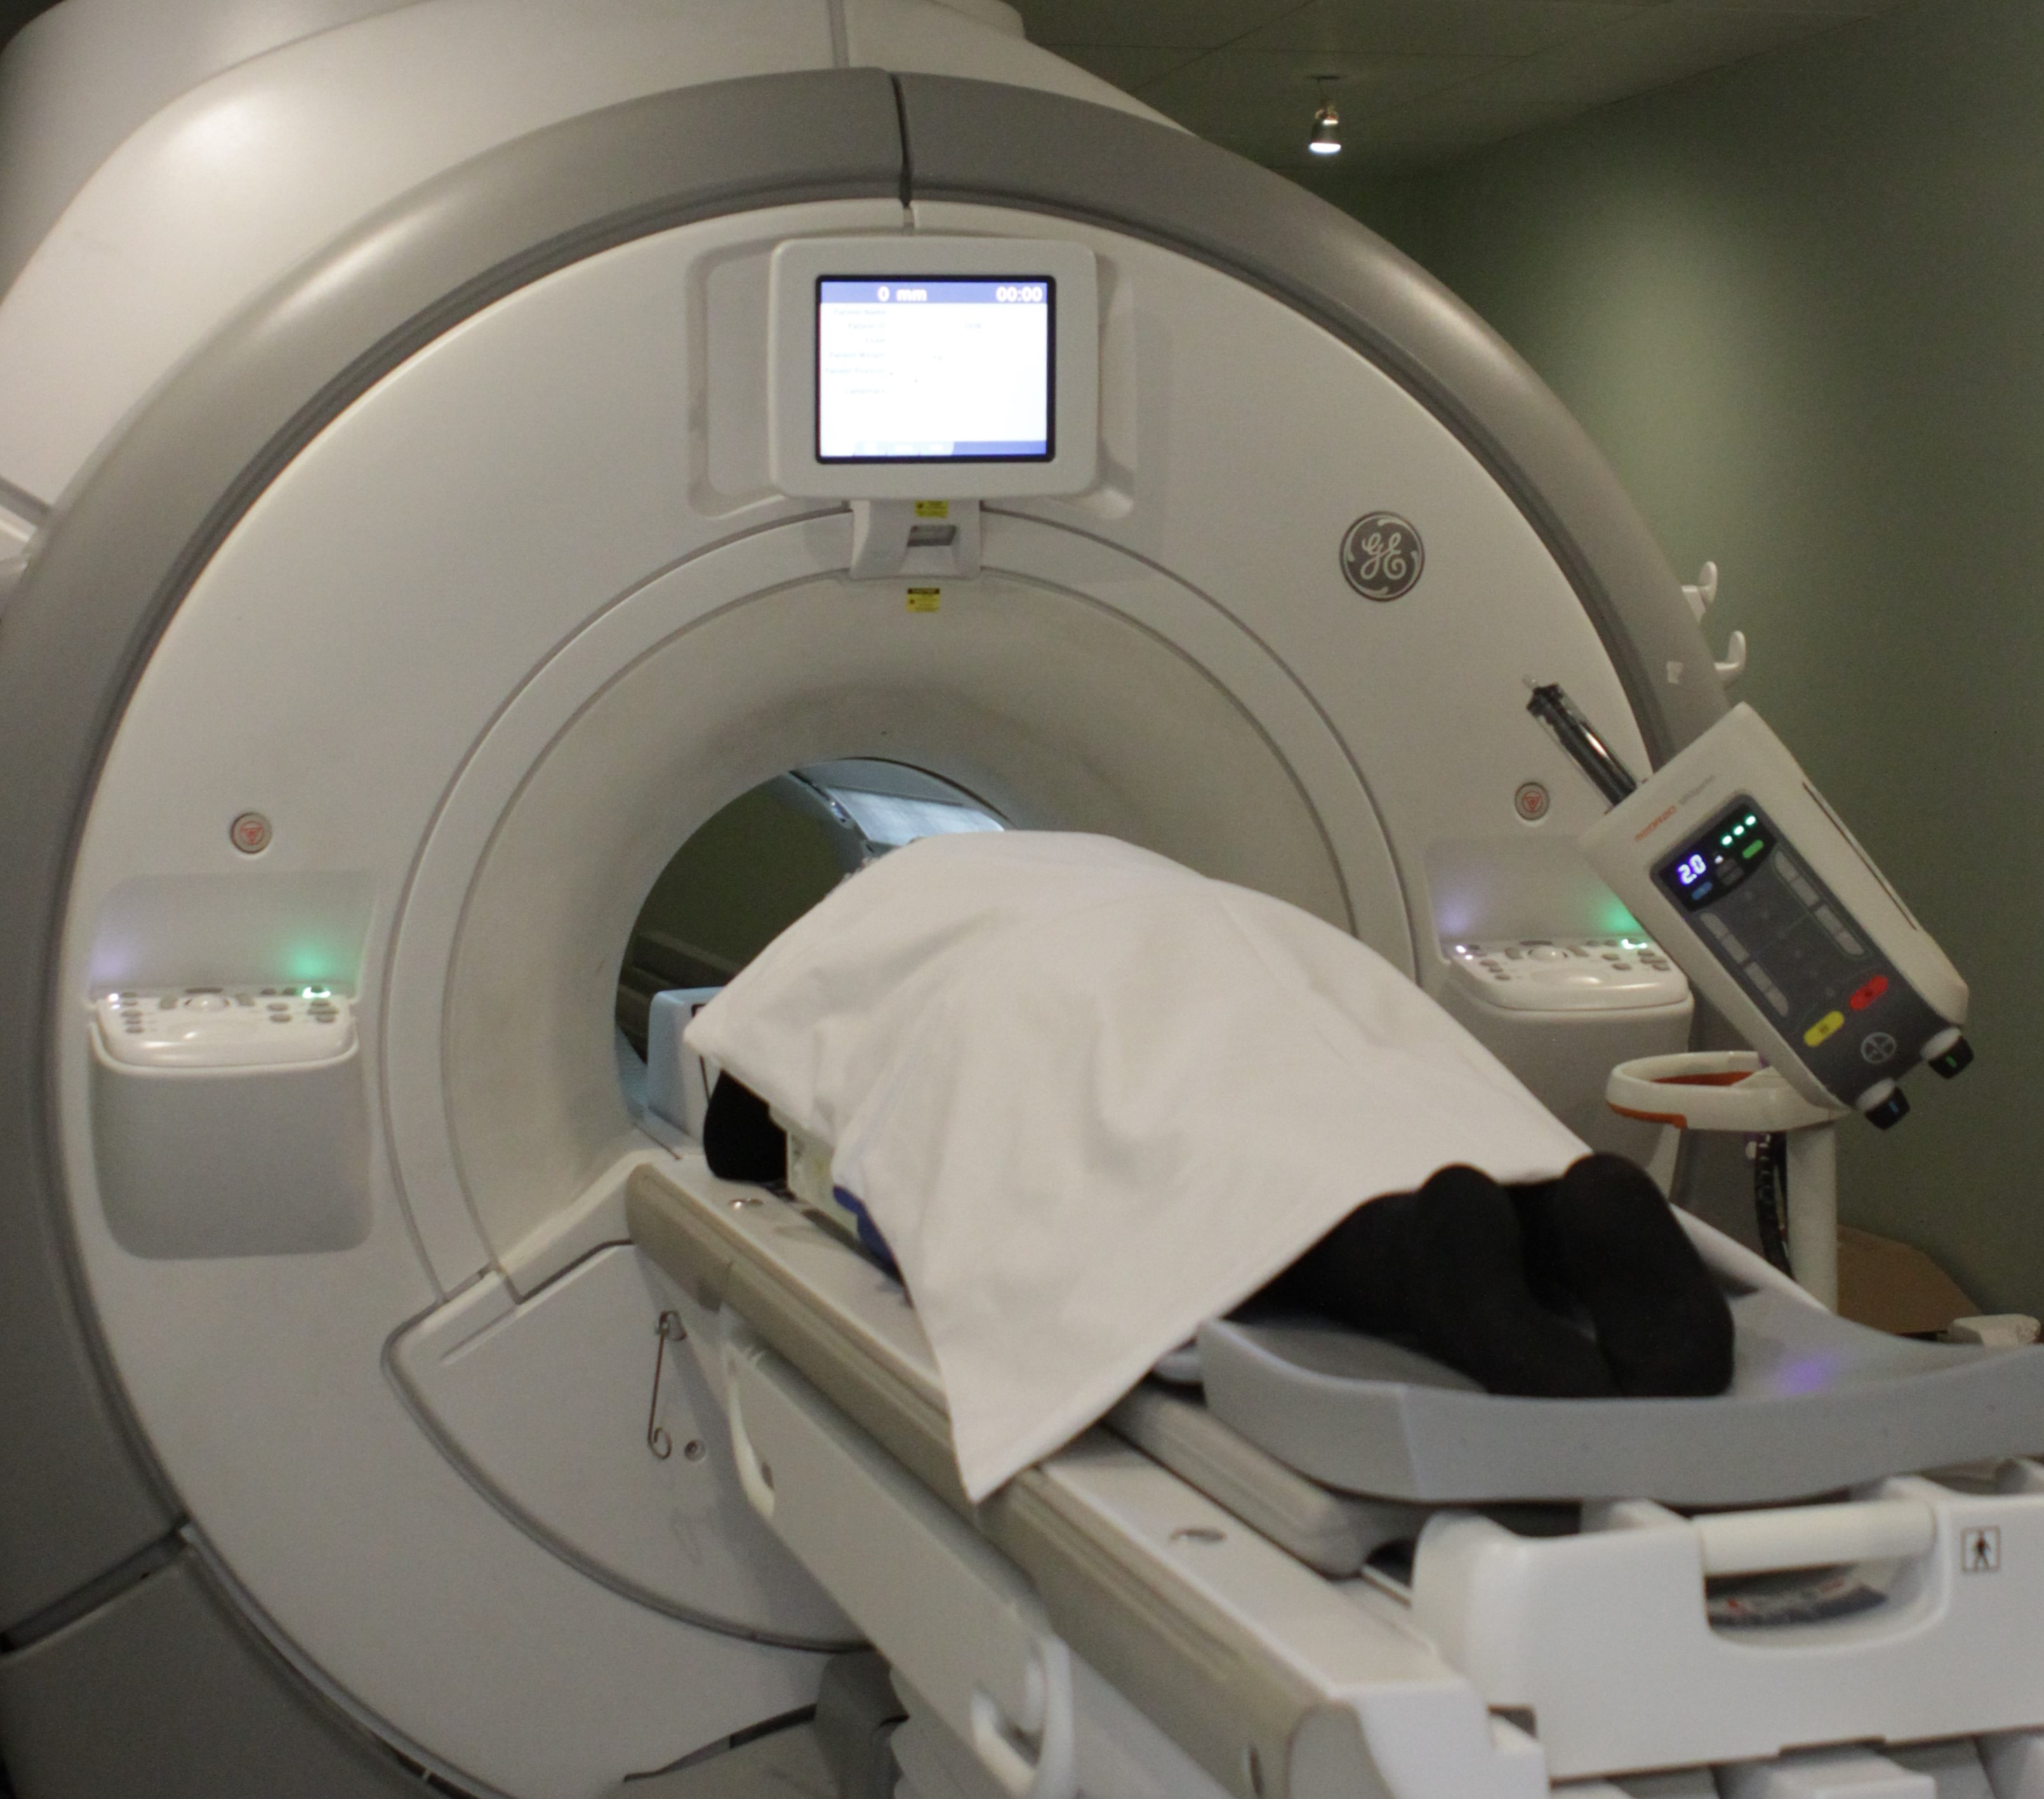 The patient is injected with the solution then given an MRI scan.